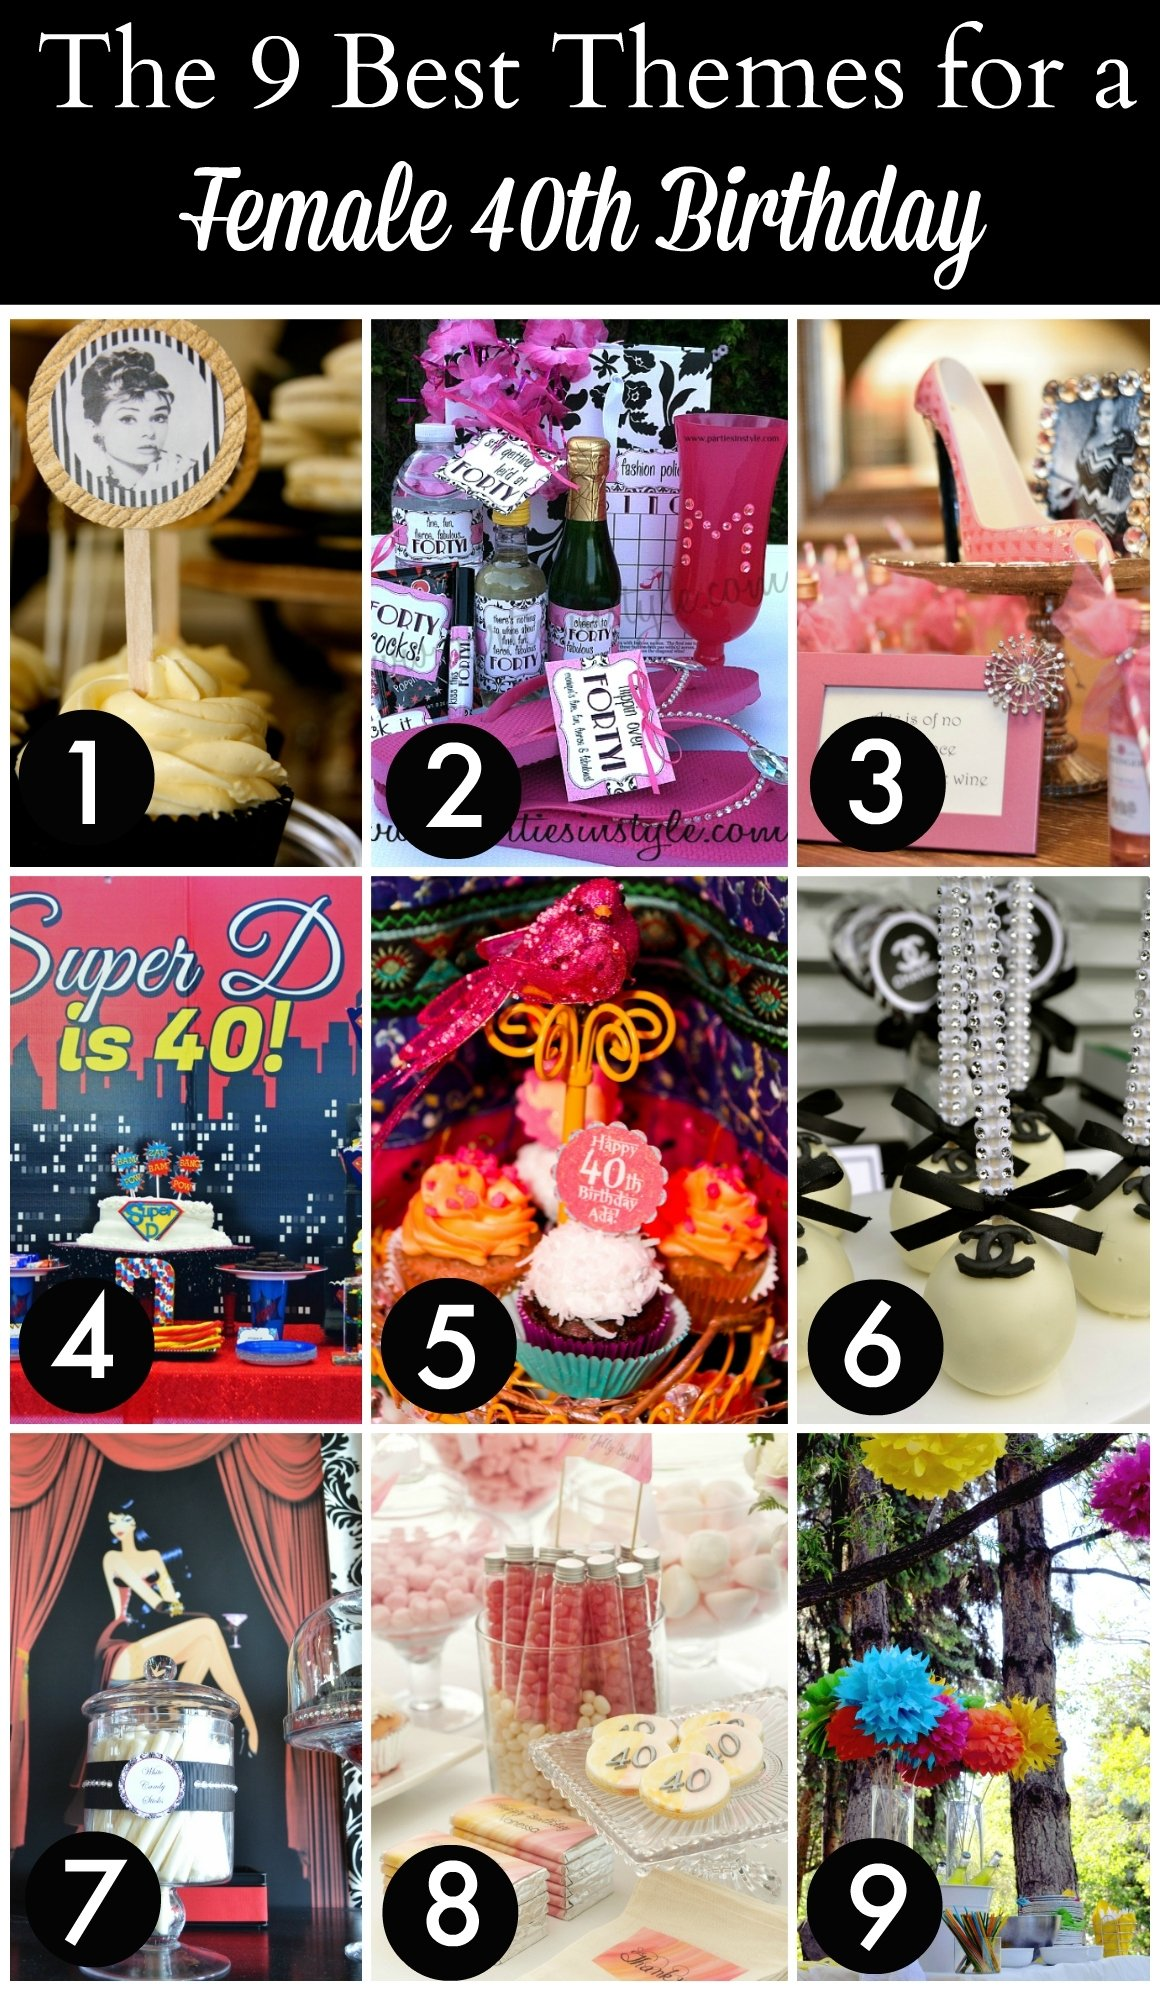 10 Lovely Ideas For 40Th Birthday Party Female the 12 best 40th birthday themes for women catch my party 13 2020